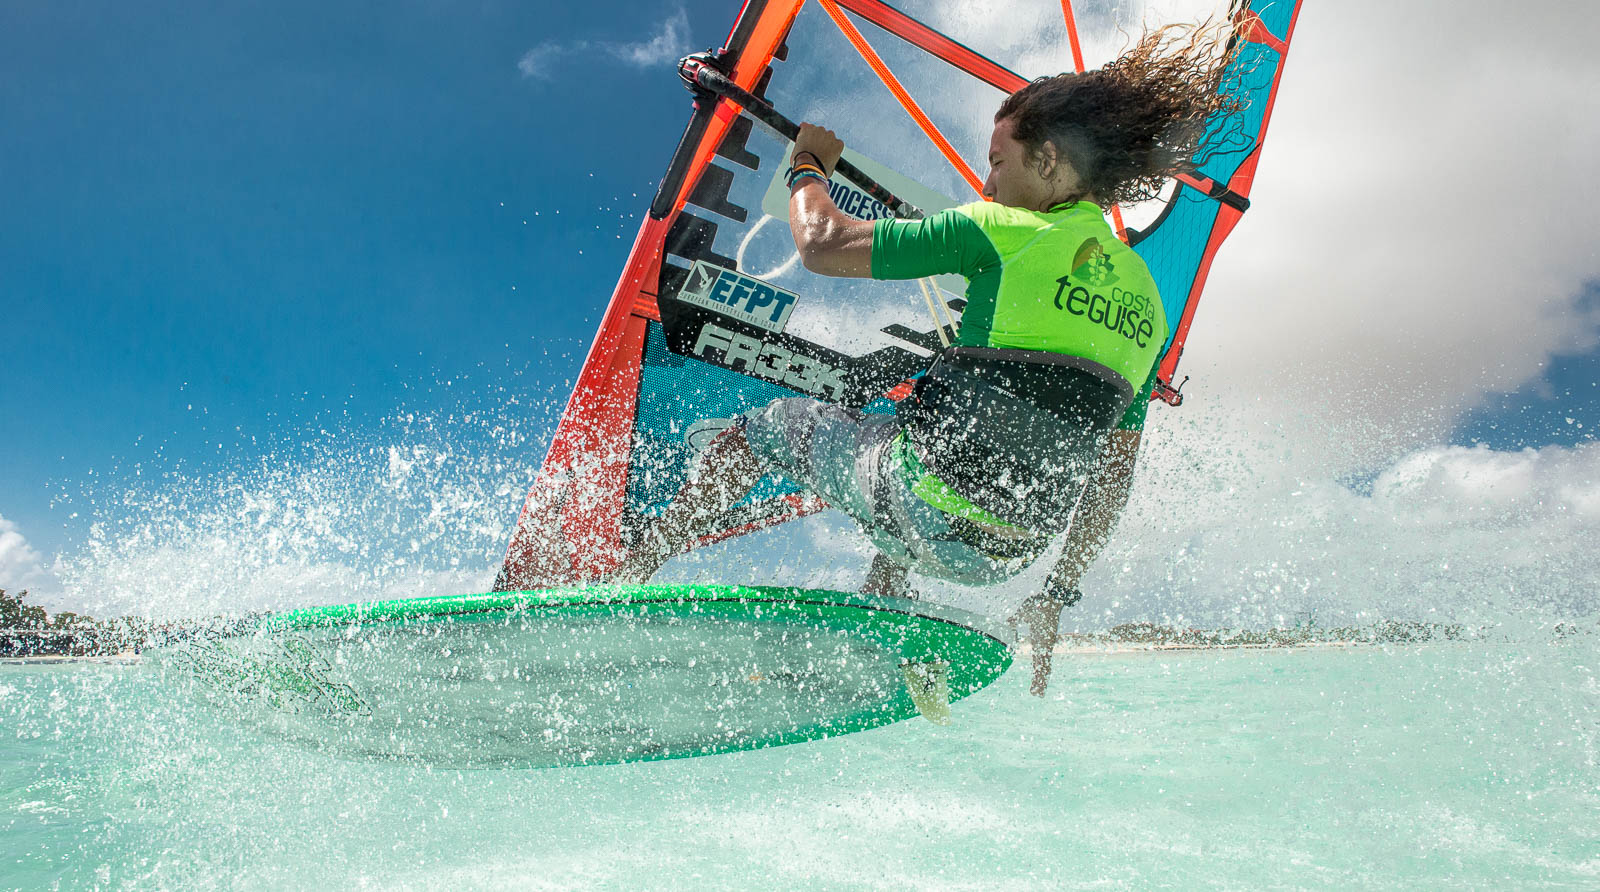 Bonaire Windsurf Place, windsurf reservations, Aron Etmon